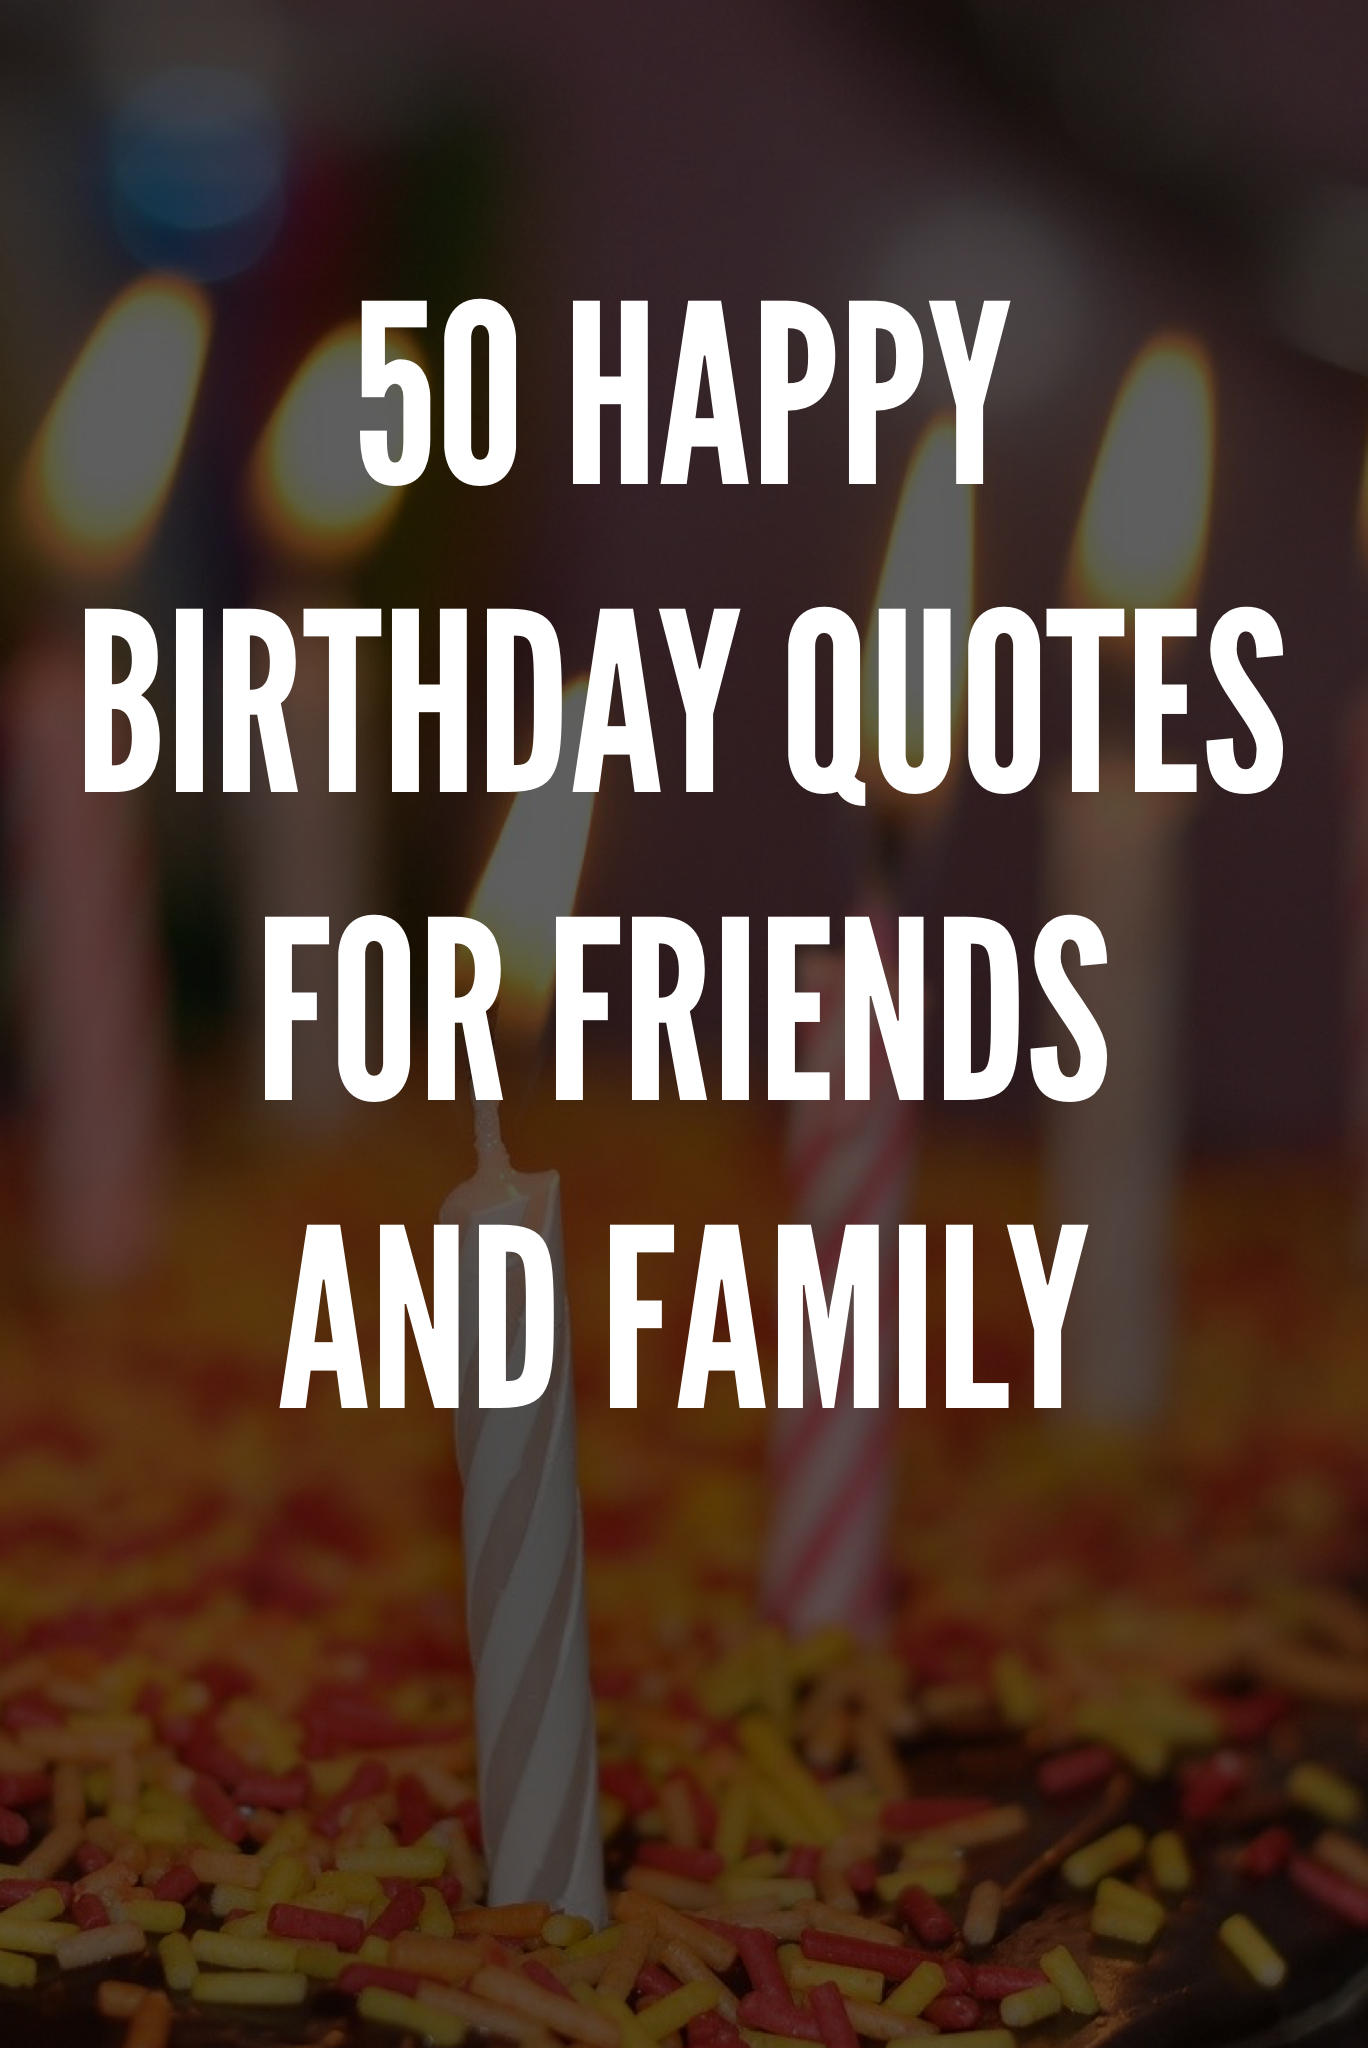 50 Happy Birthday Quotes For Friends And Family Happy Birthday Quotes Happy Birthday Quotes For Friends Friend Birthday Quotes